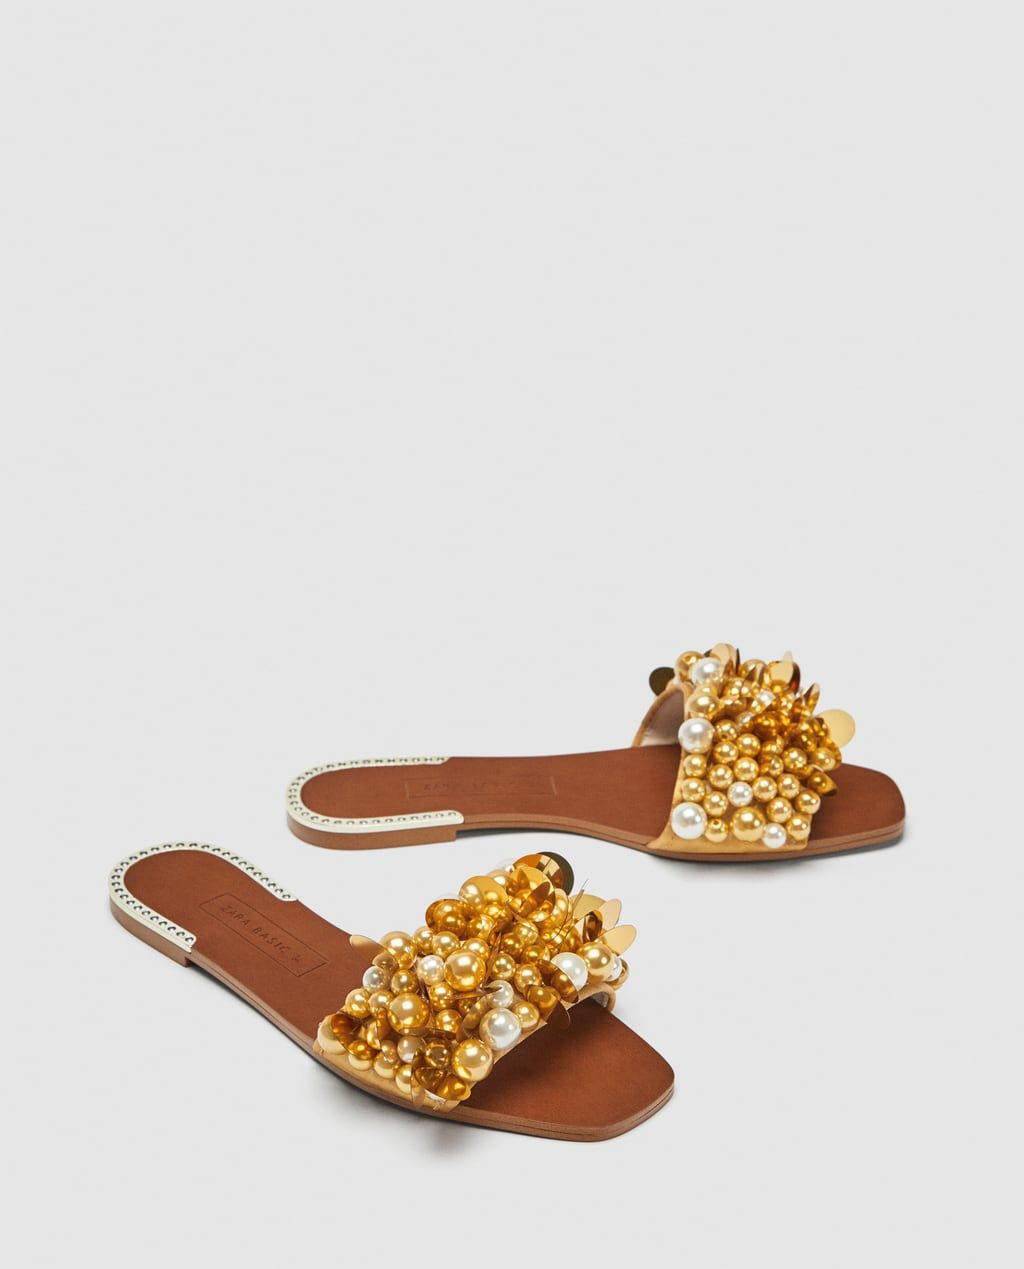 001b6c81ec7 BEADED SLIDES WITH PEARL BEADS-View all-SHOES-WOMAN